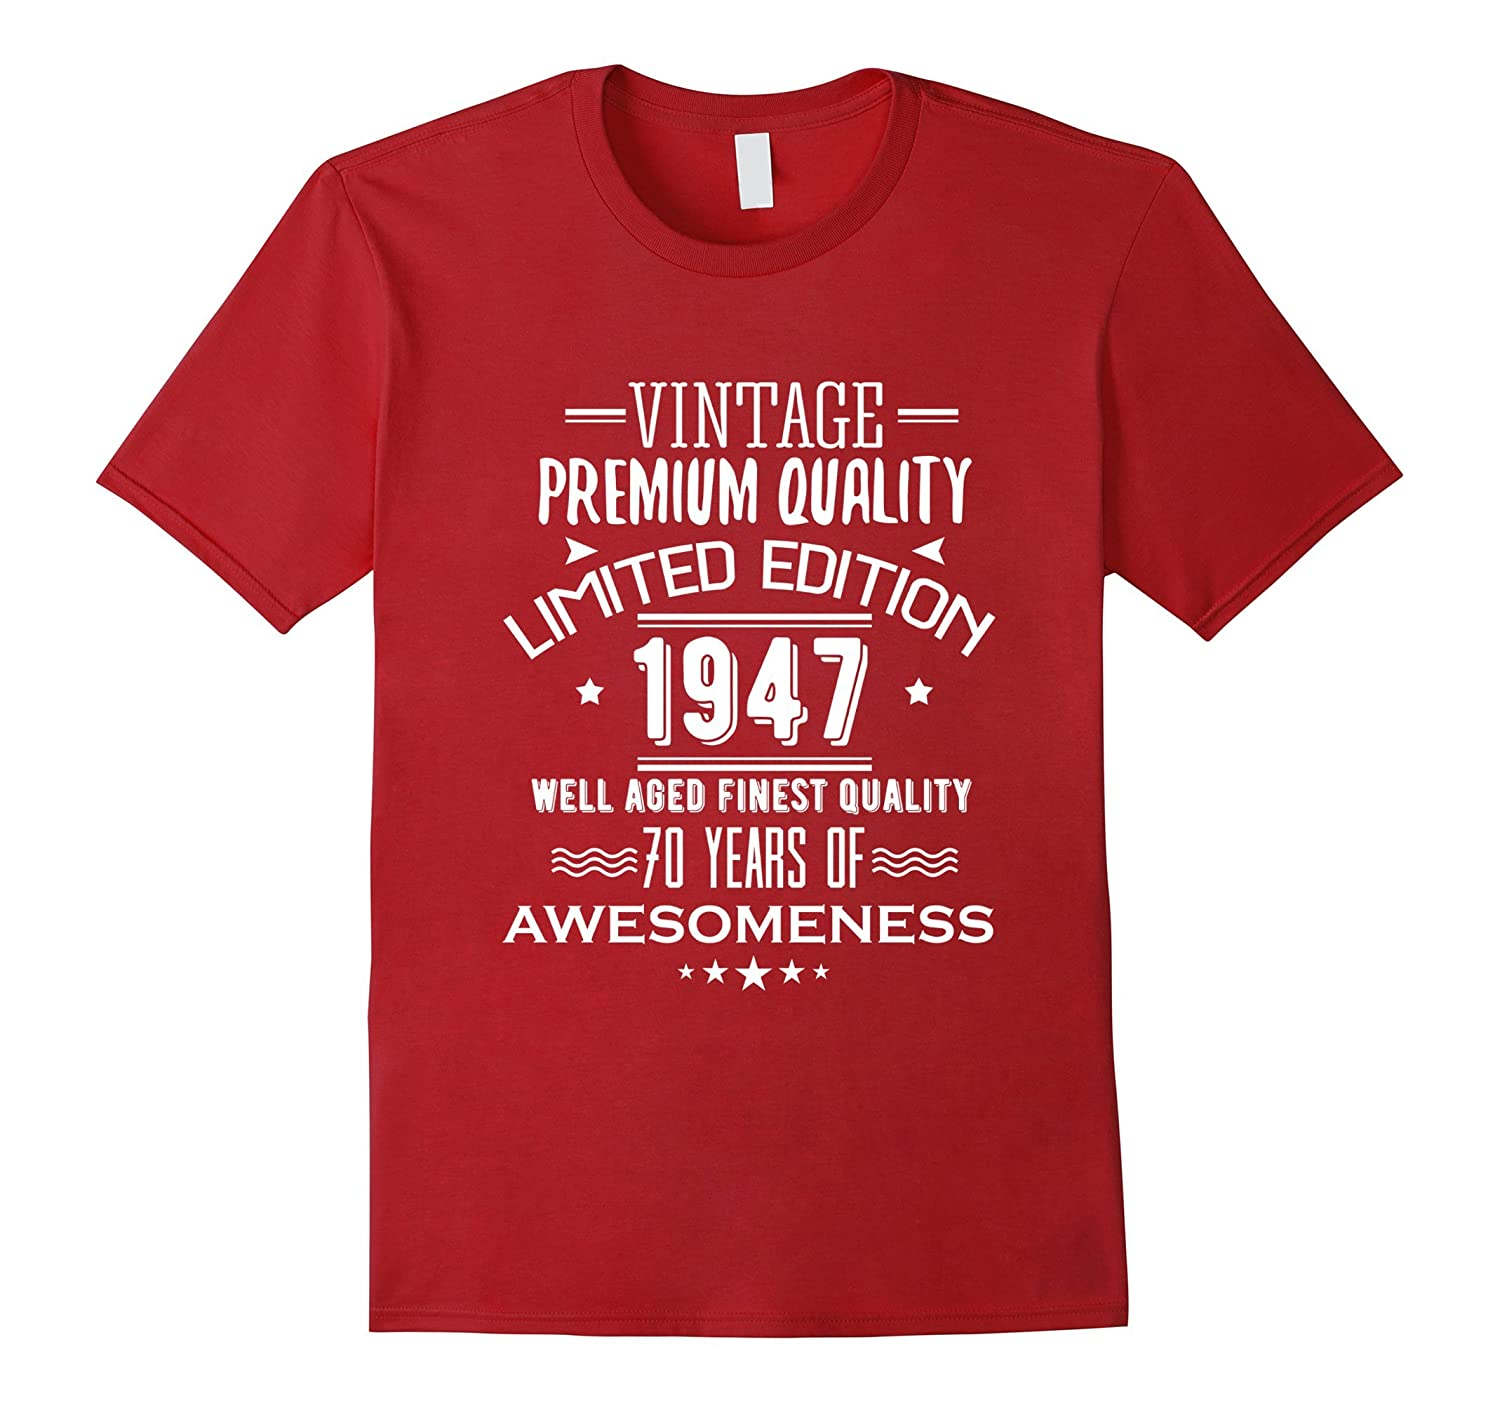 Teevkd 1947 T Shirt For Men Women 70th Birthday Gift Ideas